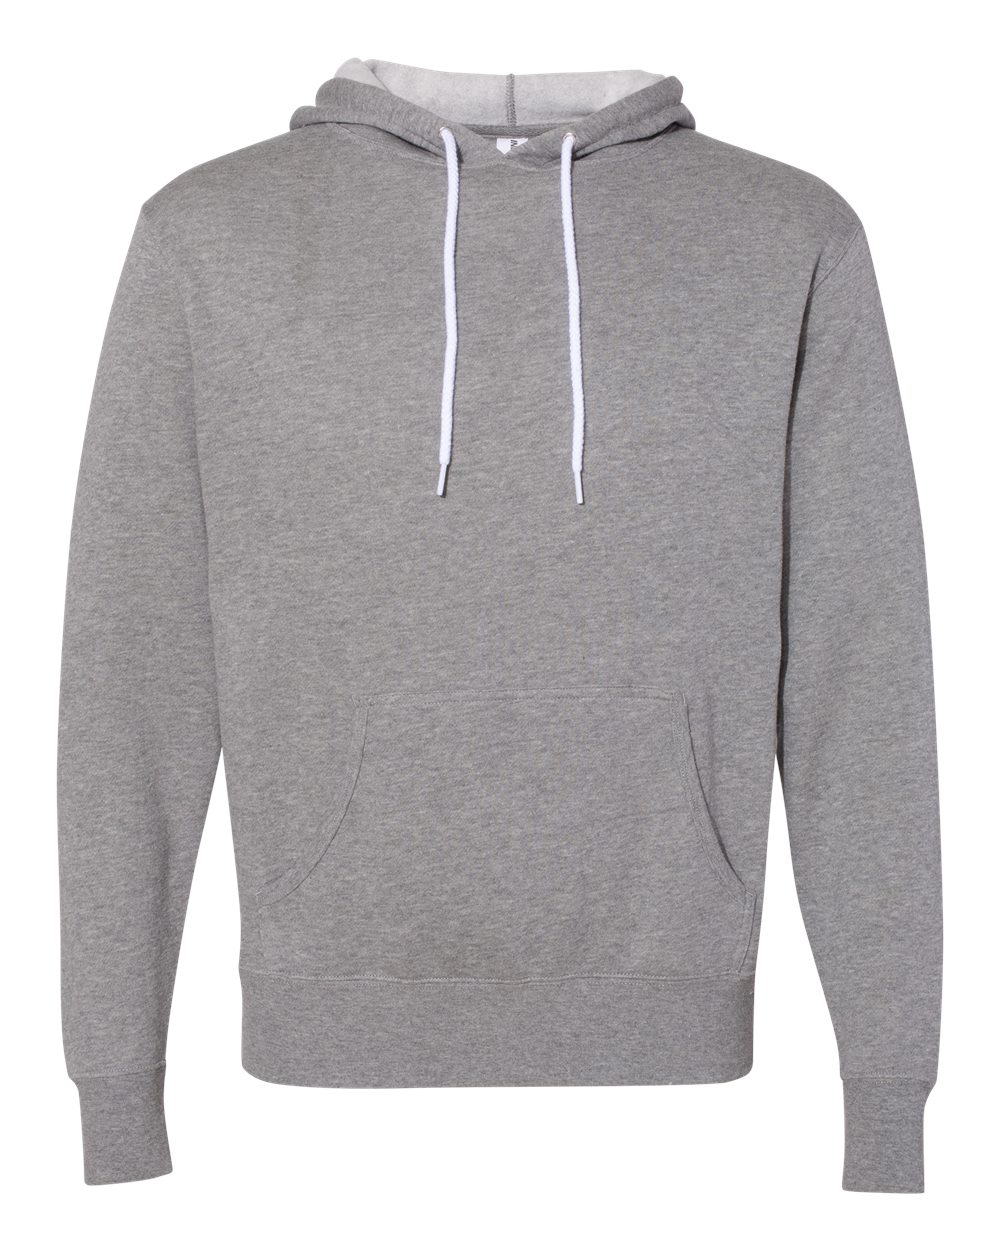 Picture of Independent Trading Co. Lightweight Hooded Sweatshirt